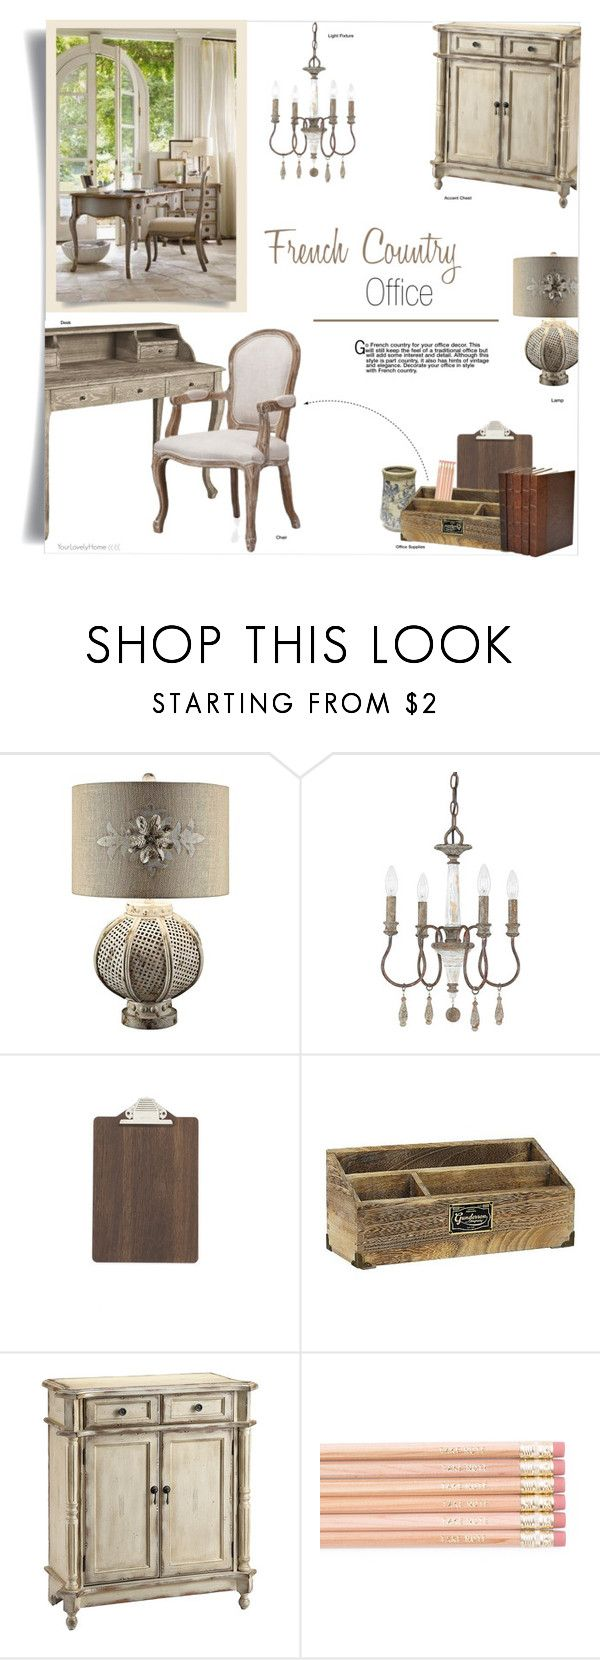 """French Country Office"" by yourlovelyhome ❤ liked on Polyvore featuring interior, interiors, interior design, home, home decor, interior decorating, Crestview Collection, ferm LIVING, Threshold and Stein World"